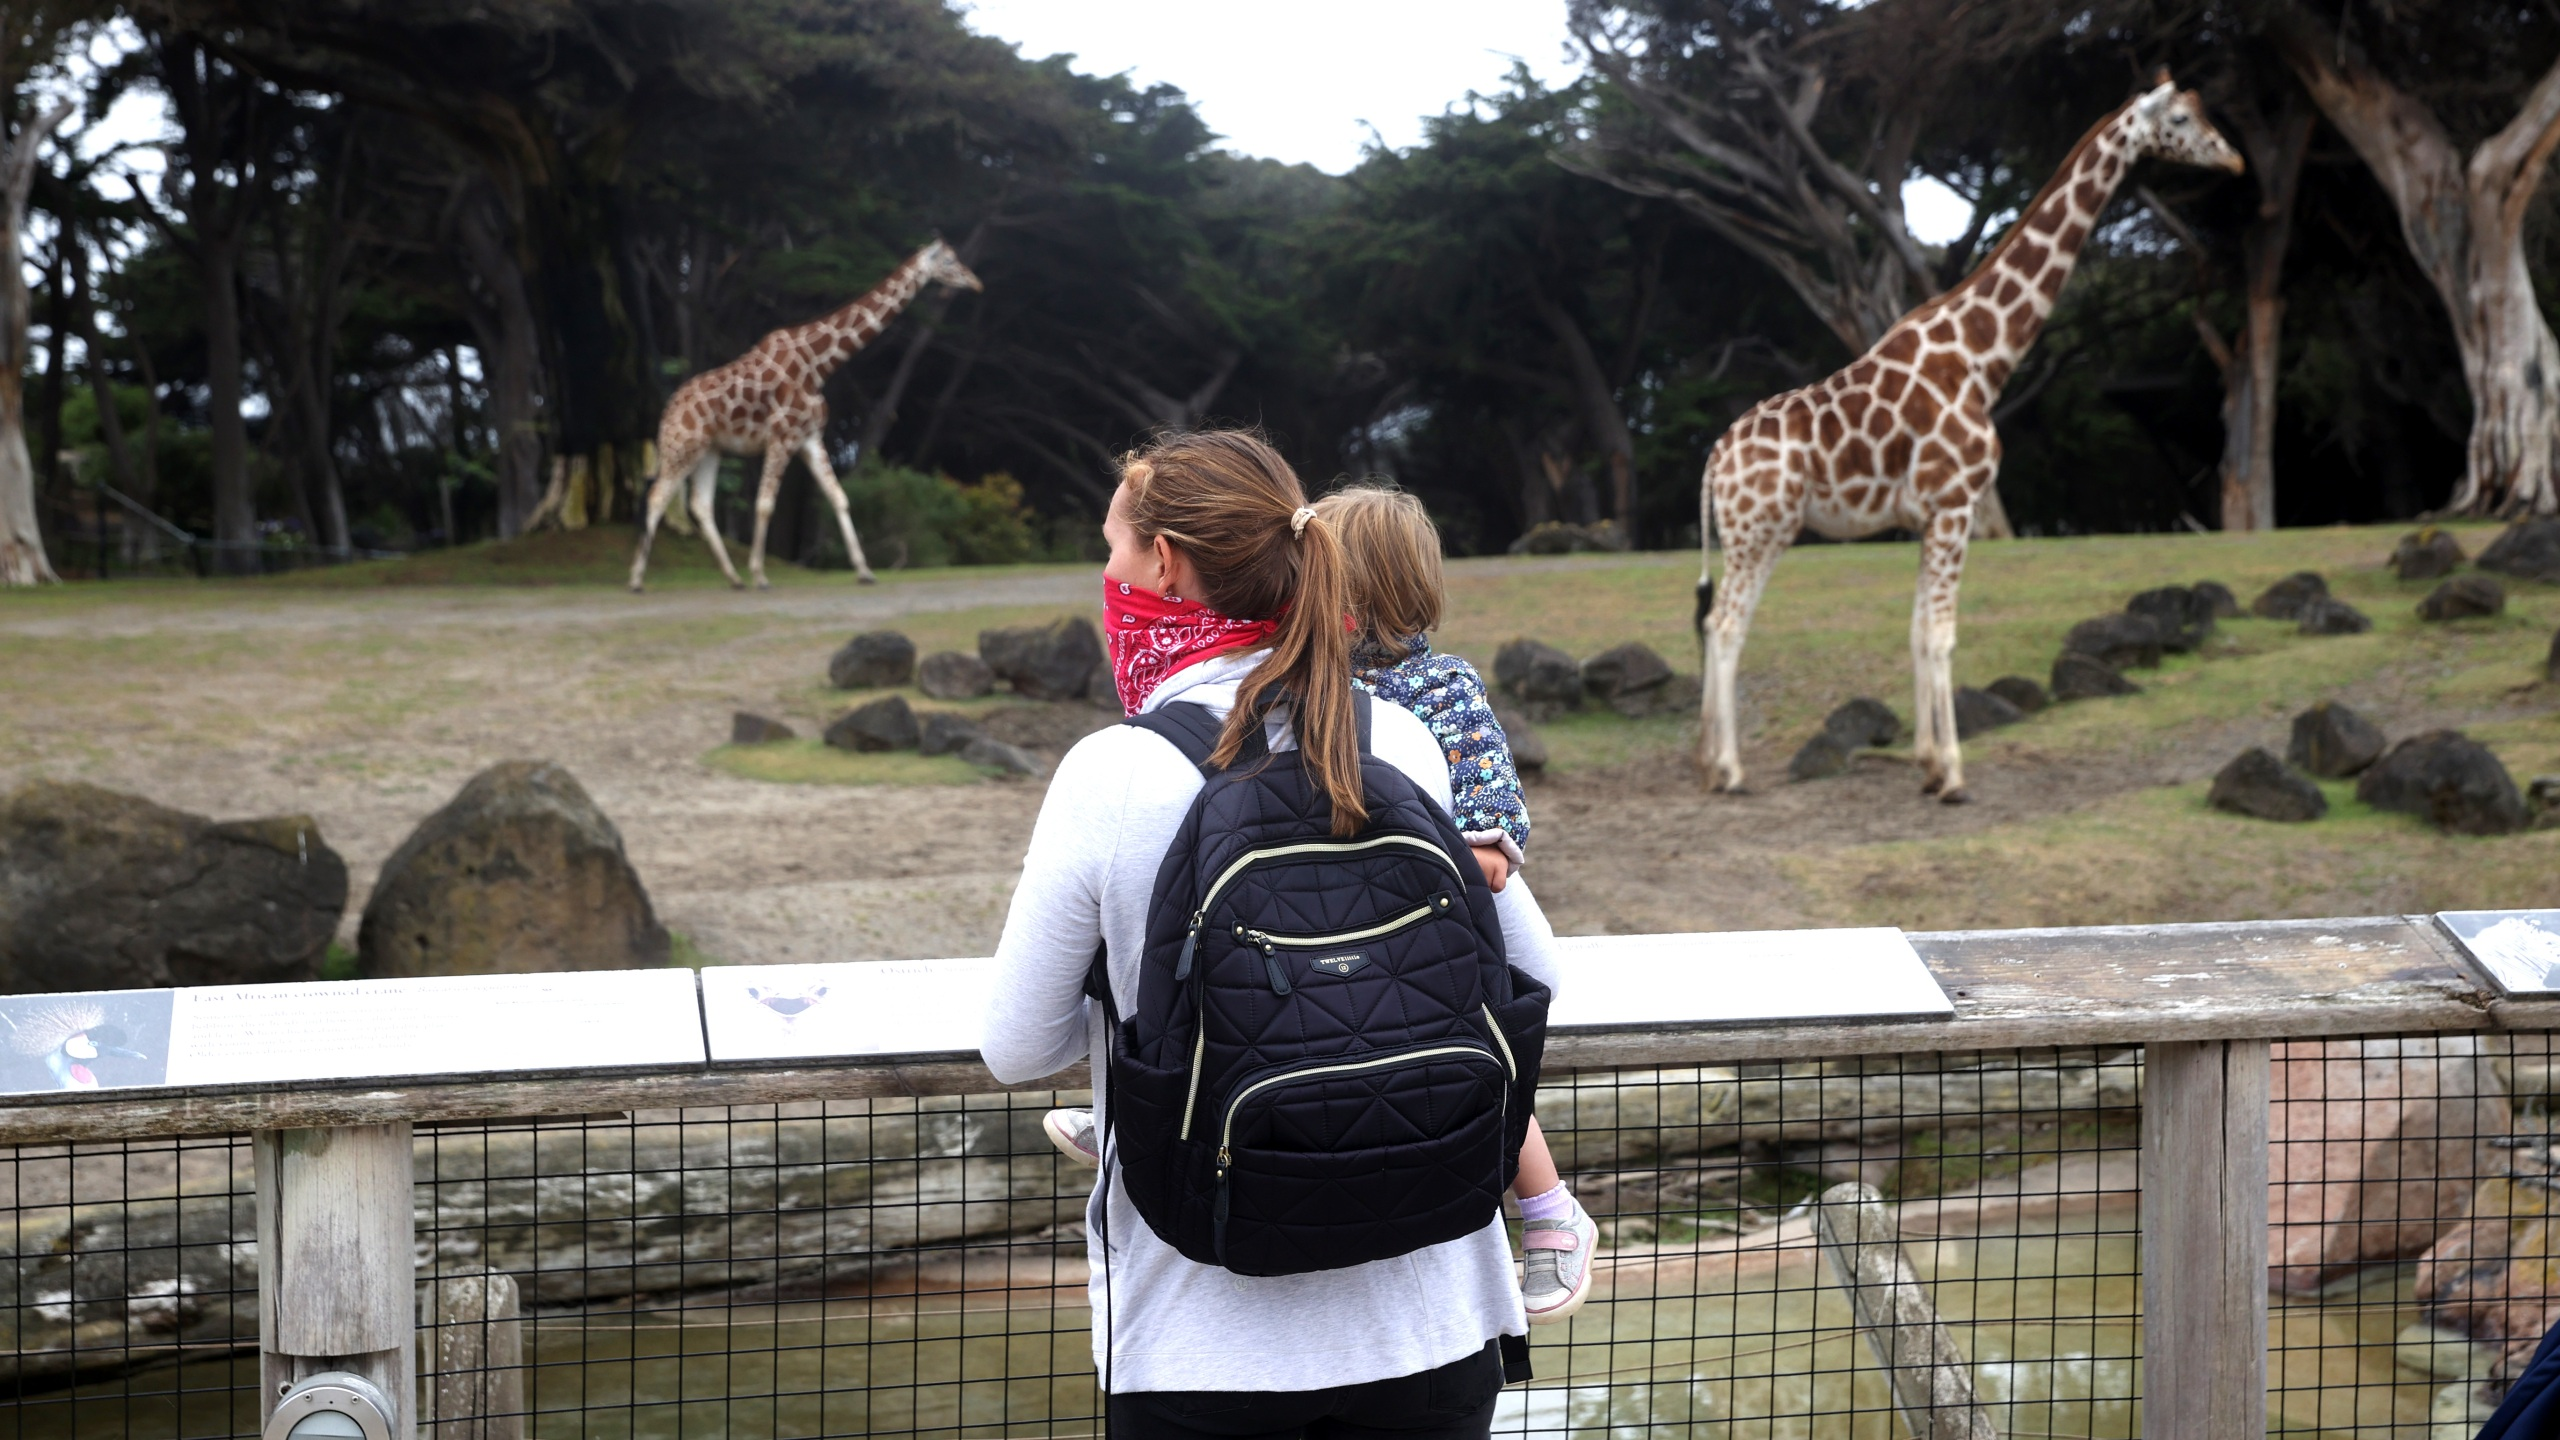 Visitors look at the giraffe exhibit at the San Francisco Zoo on July 13, 2020. (Justin Sullivan/Getty Images)